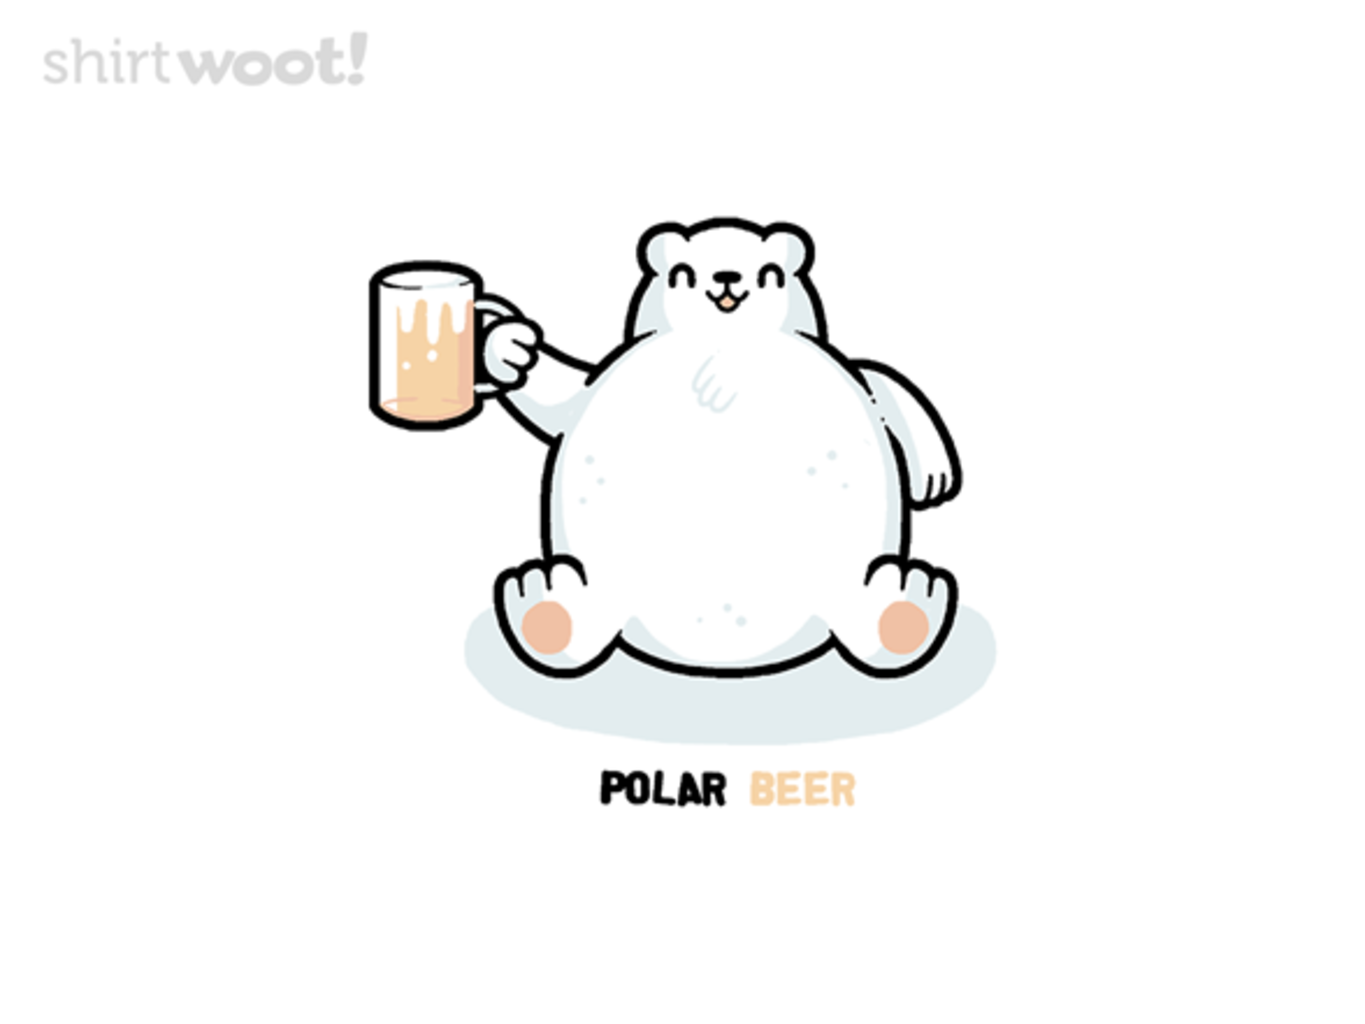 Woot!: Polar Beer - $8.00 + $5 standard shipping